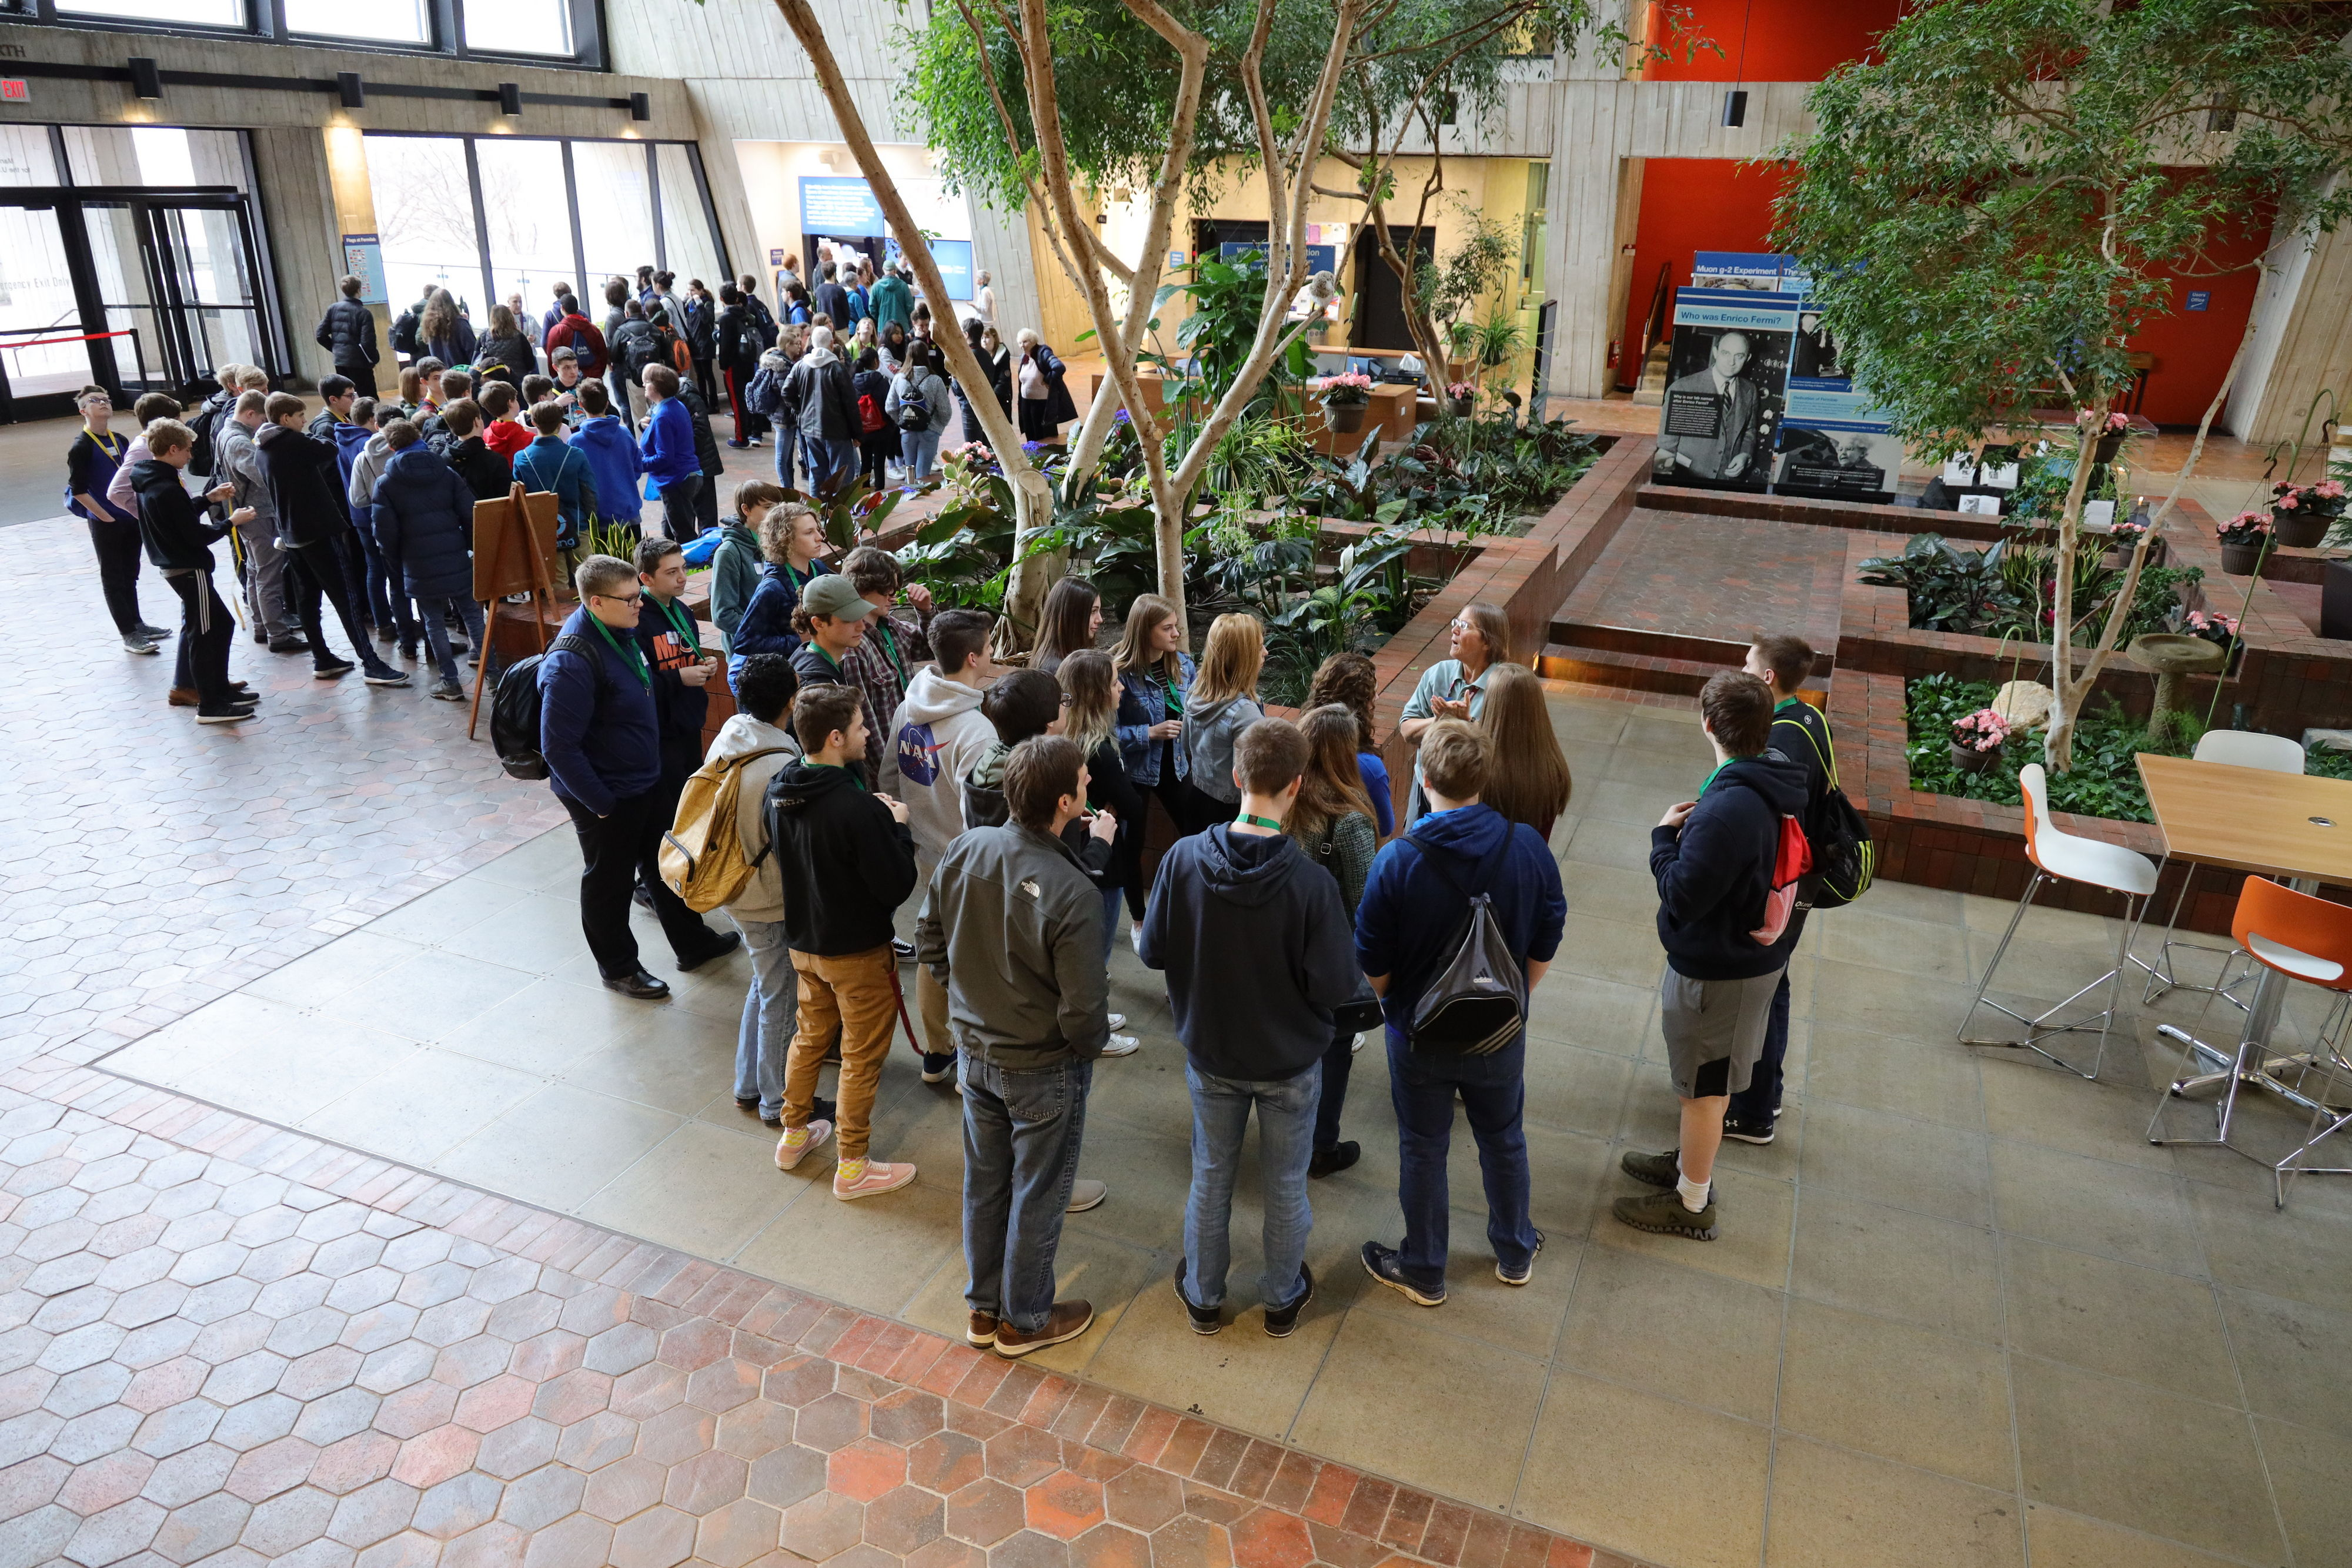 Tons of high schoolers toured the lab in March. On March 20, the atrium was FULL of students at 10 a.m. people, education, outreach Photo: Elliott McCrory